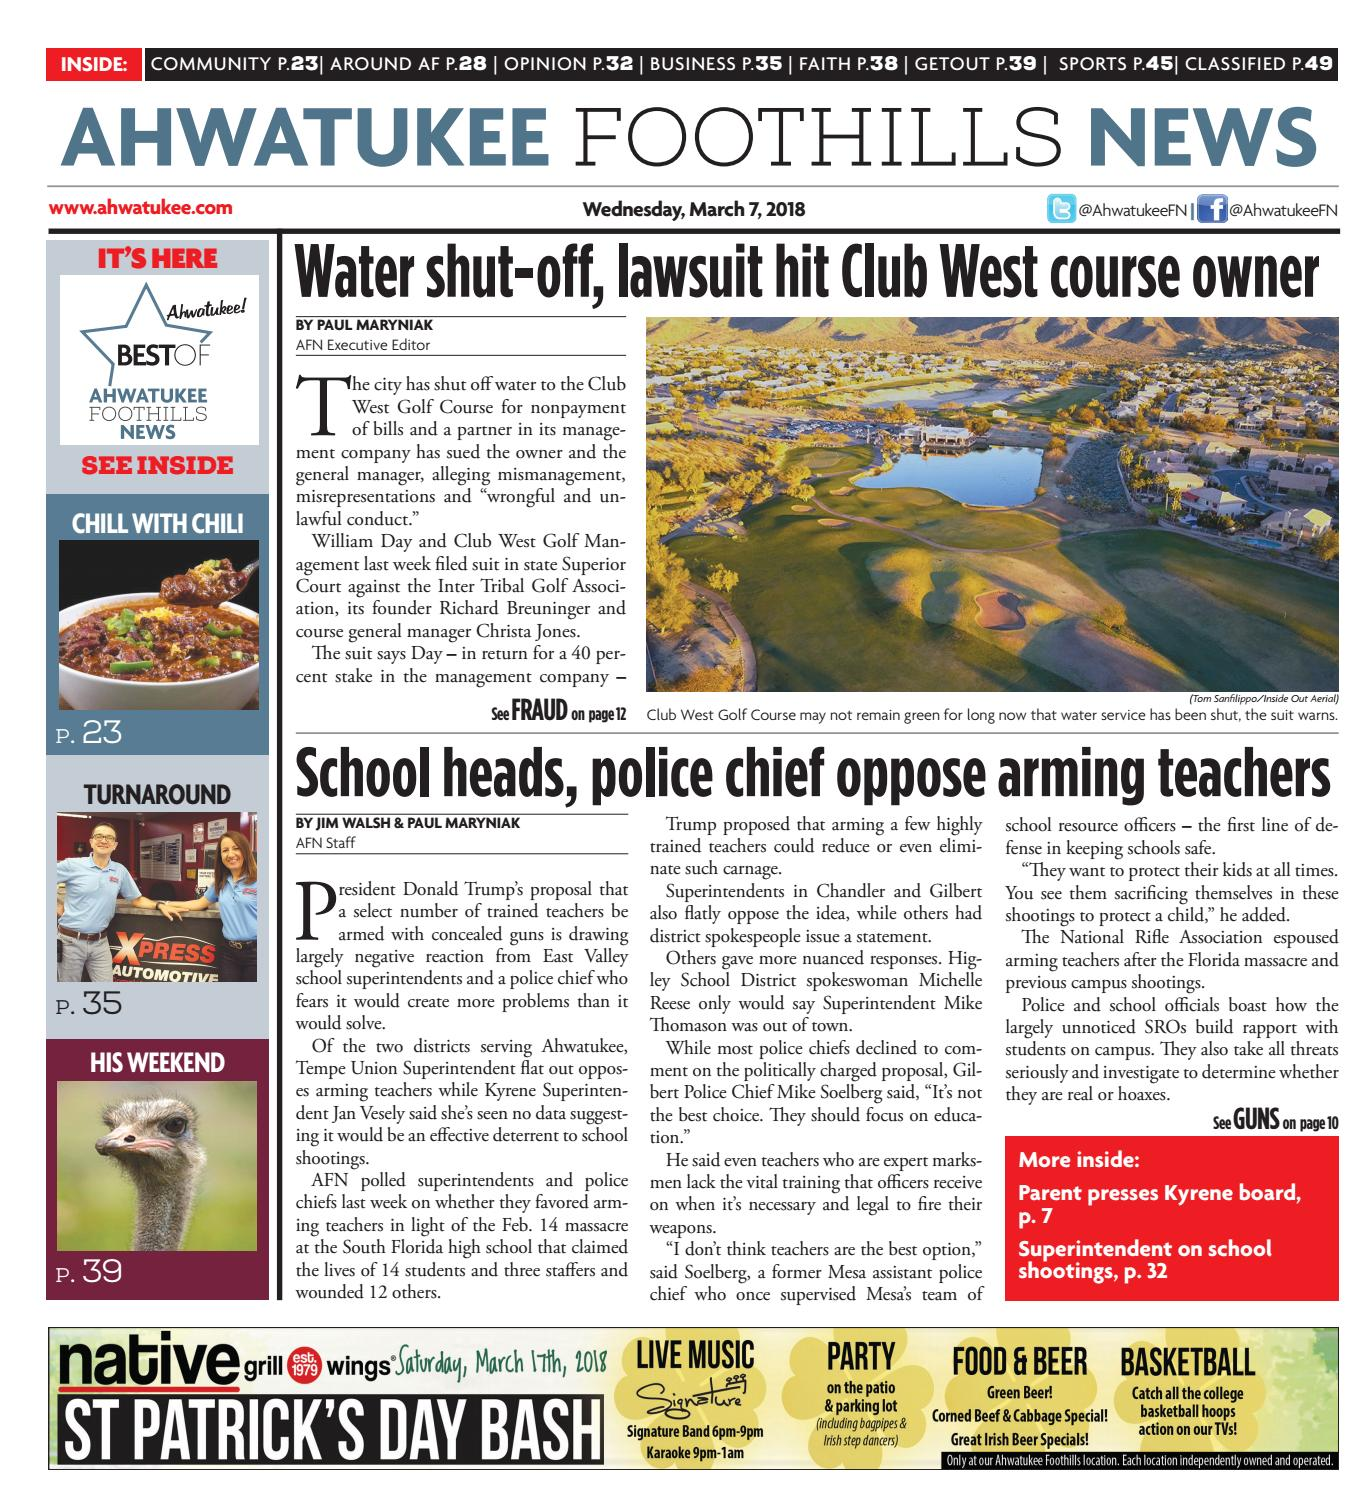 8becde3e04d Ahwatukee Foothills News - March 7